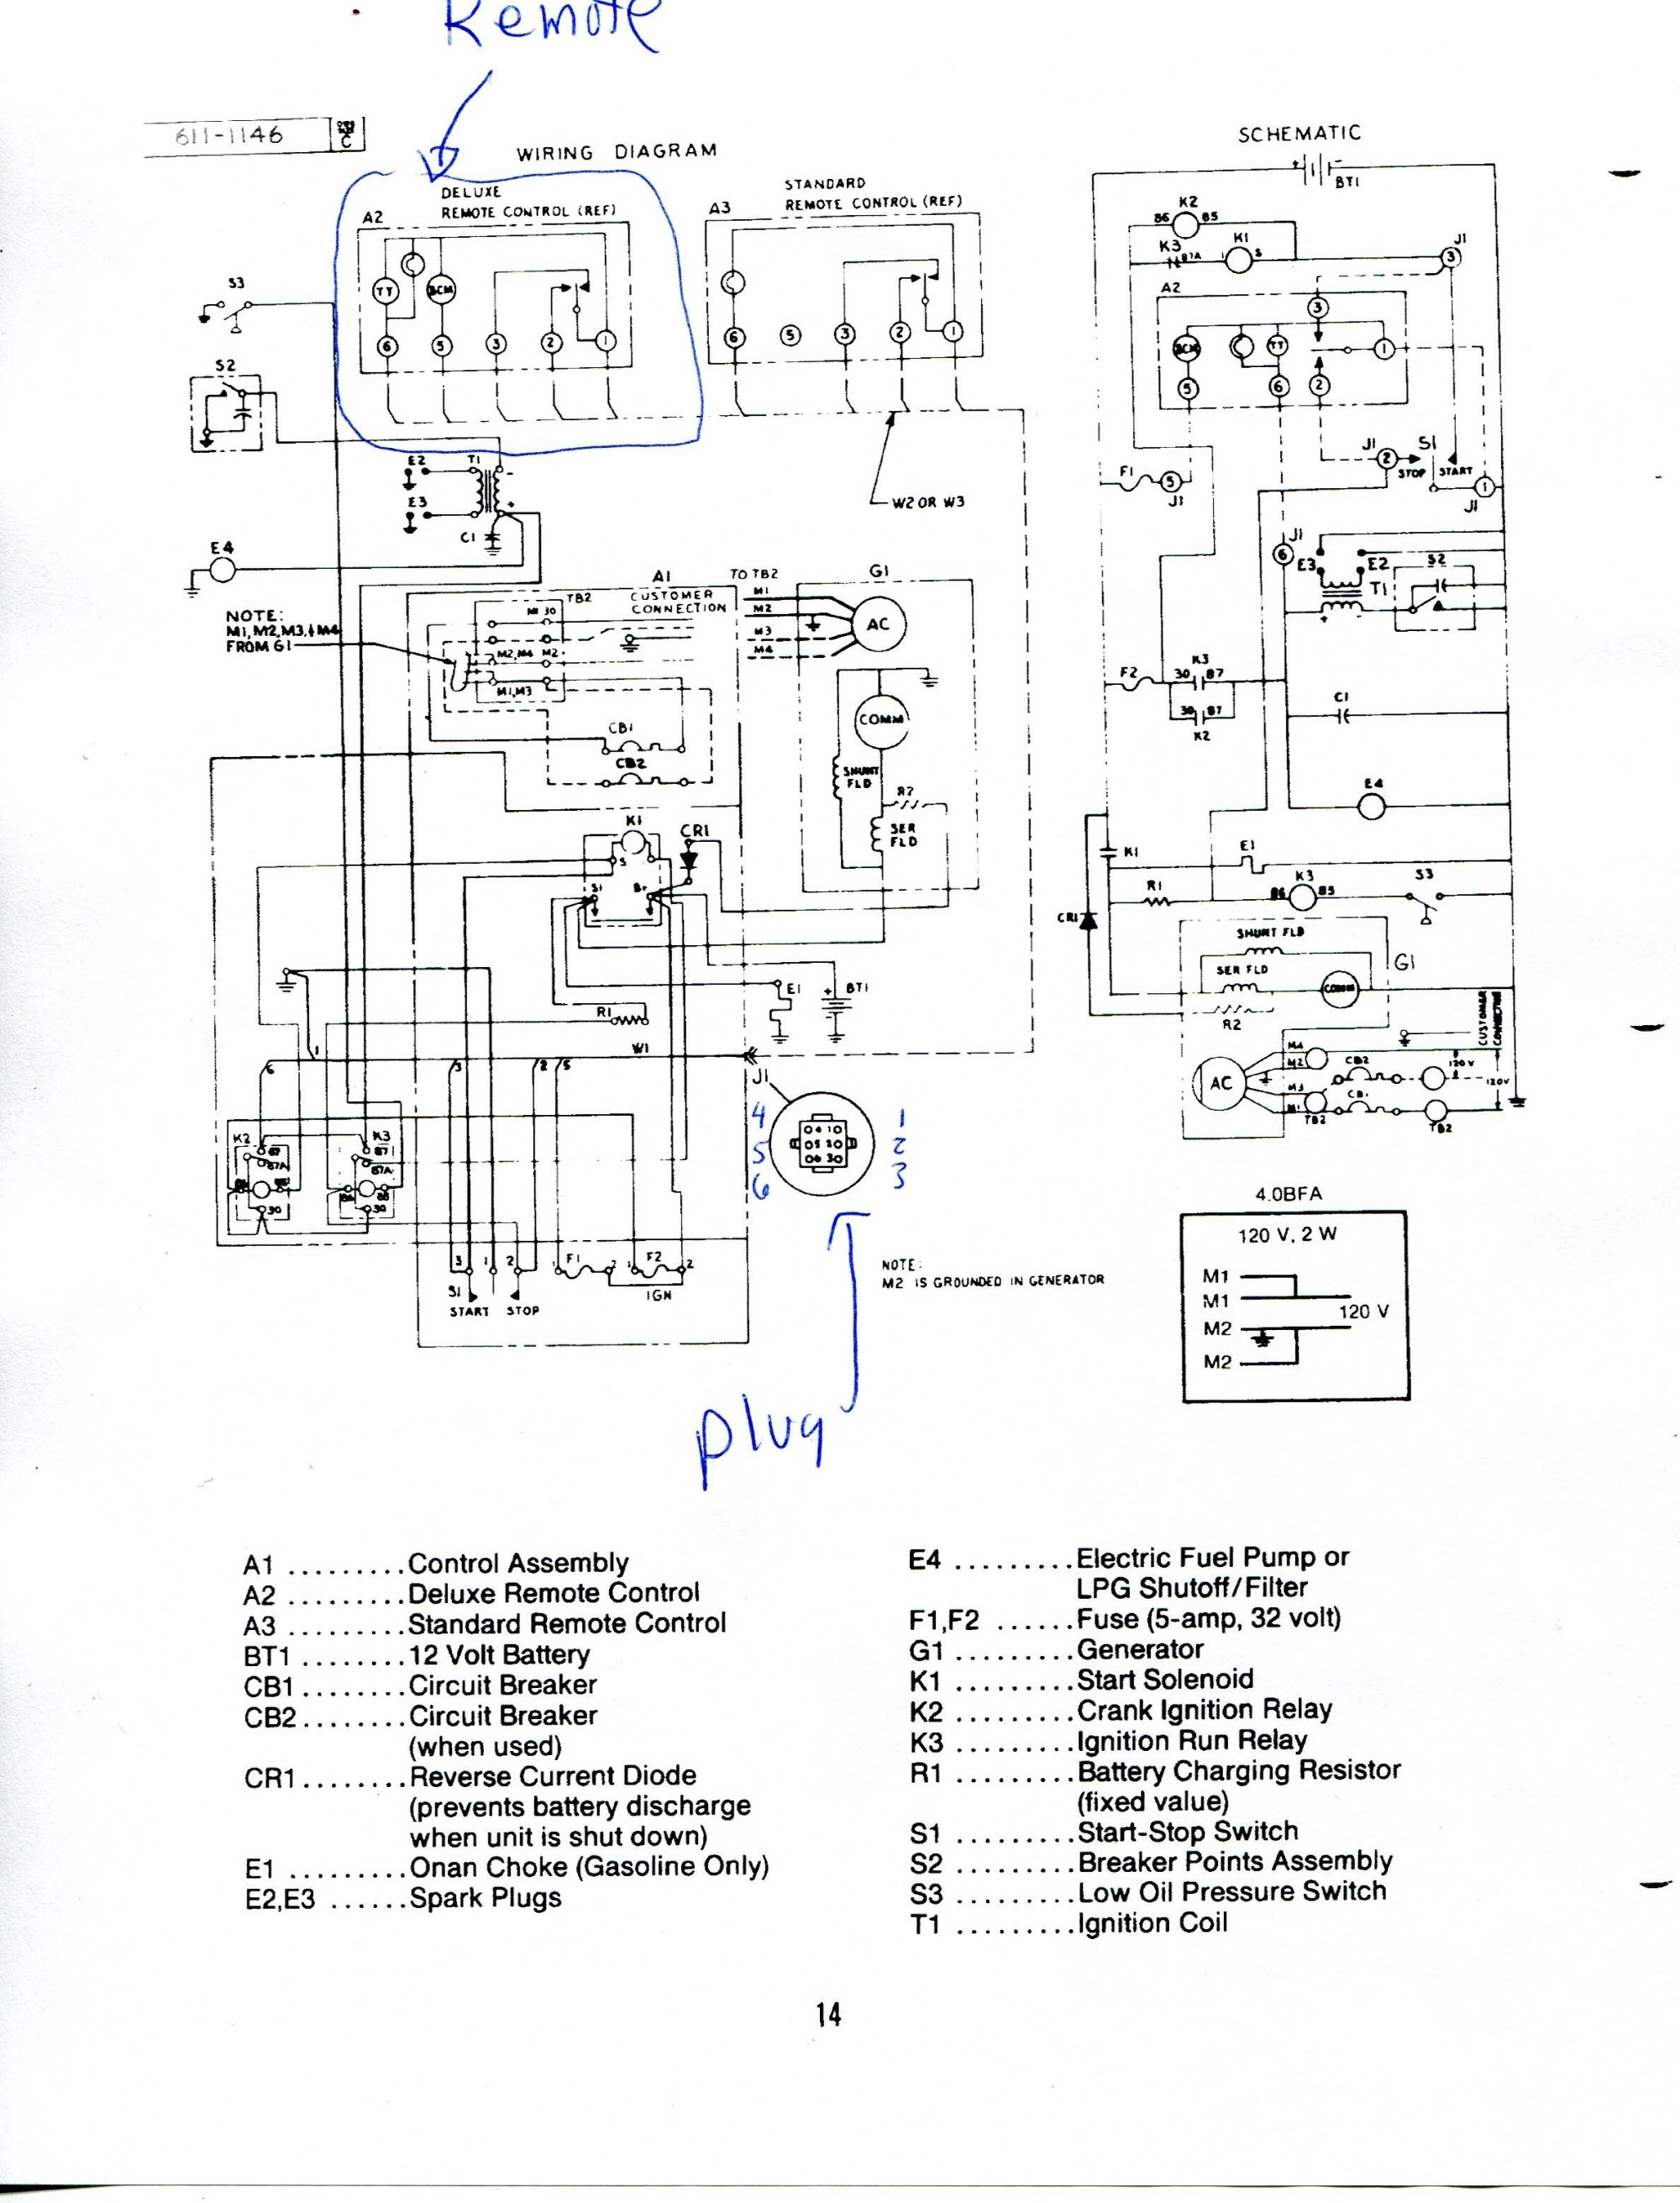 hight resolution of onan 5500 wiring diagram simple wiring diagram site 5500 watt onan rv generator onan 5500 generator